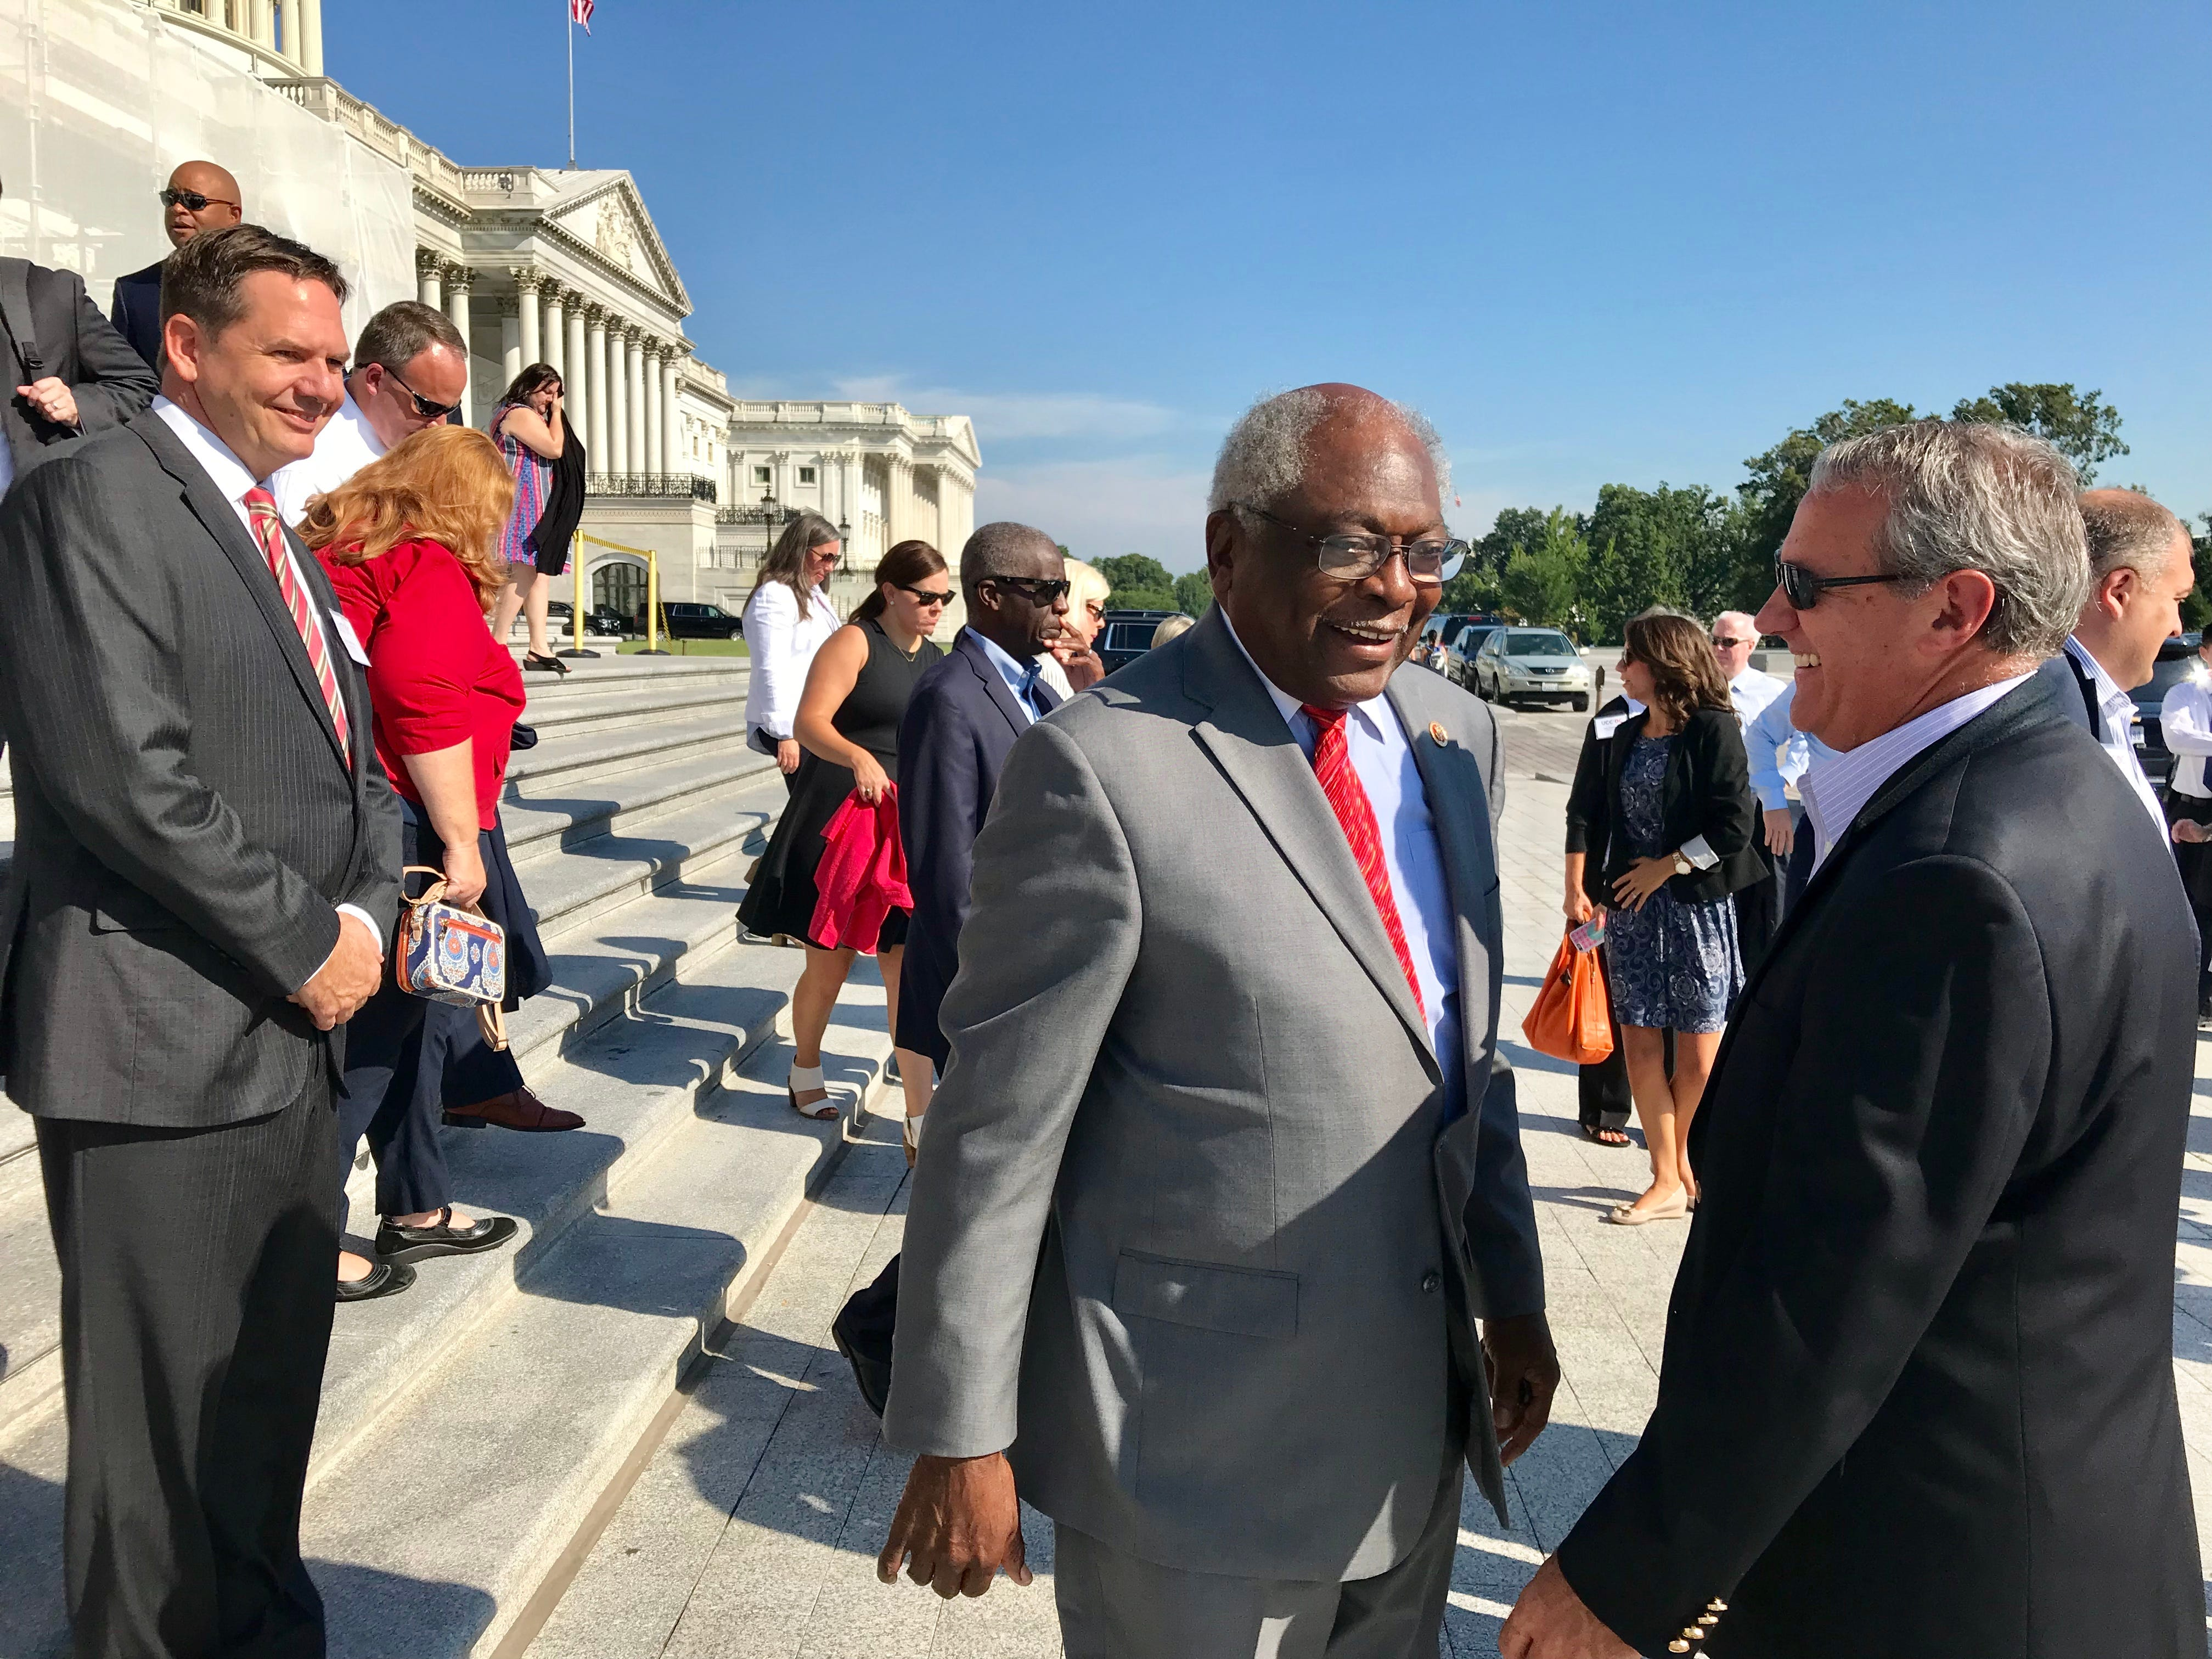 South Carolina House District 6 Rep. Jim Clyburn, center, chats with Max Metcalf, manager of government and community relations for BMW Manufacturing in Greer, on Thursday, Sept 6, 2018, on the steps of the U.S. Capitol in Washington, D.C. Metcalf was part of an Upstate Chamber Coalition delegation that visited the nation's capital this week.